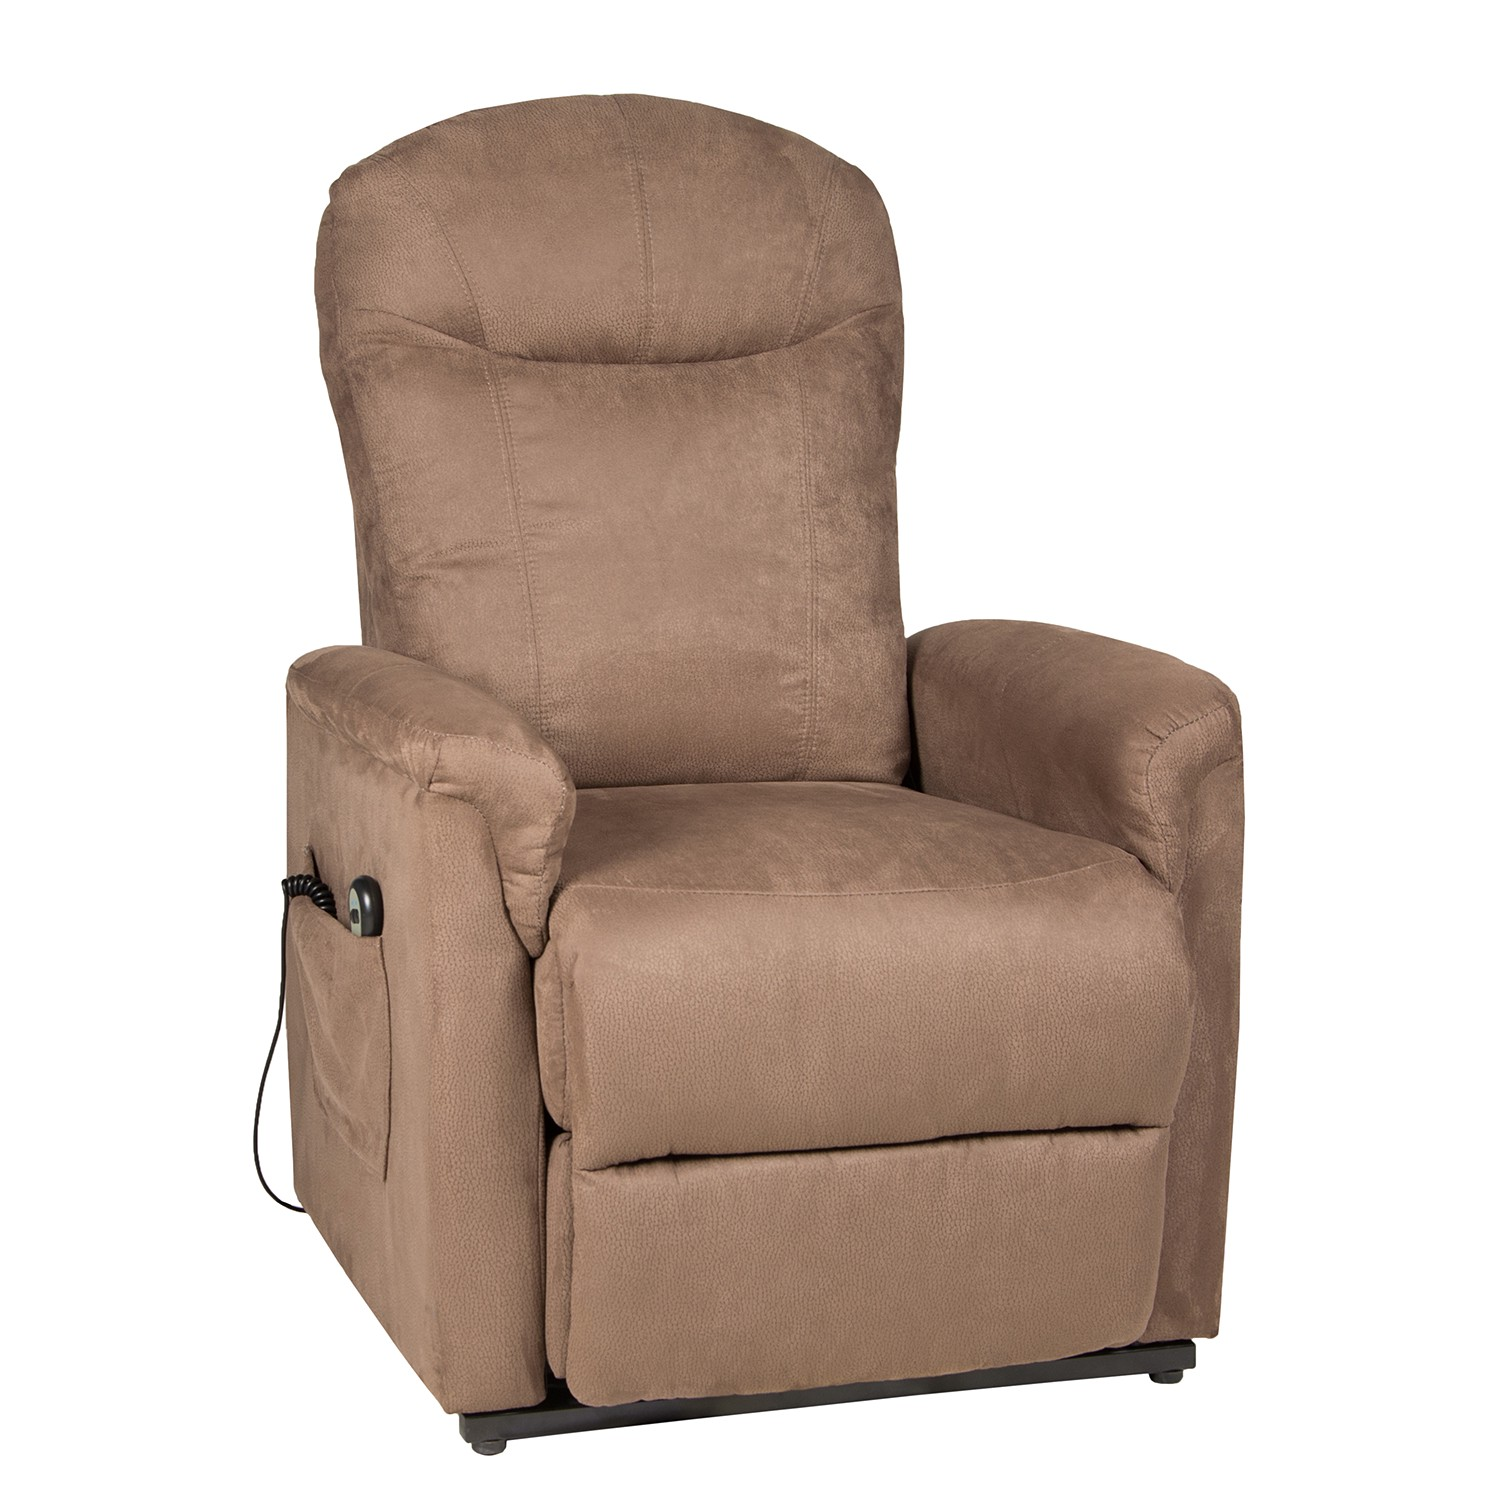 Fauteuil de relaxation Tomino